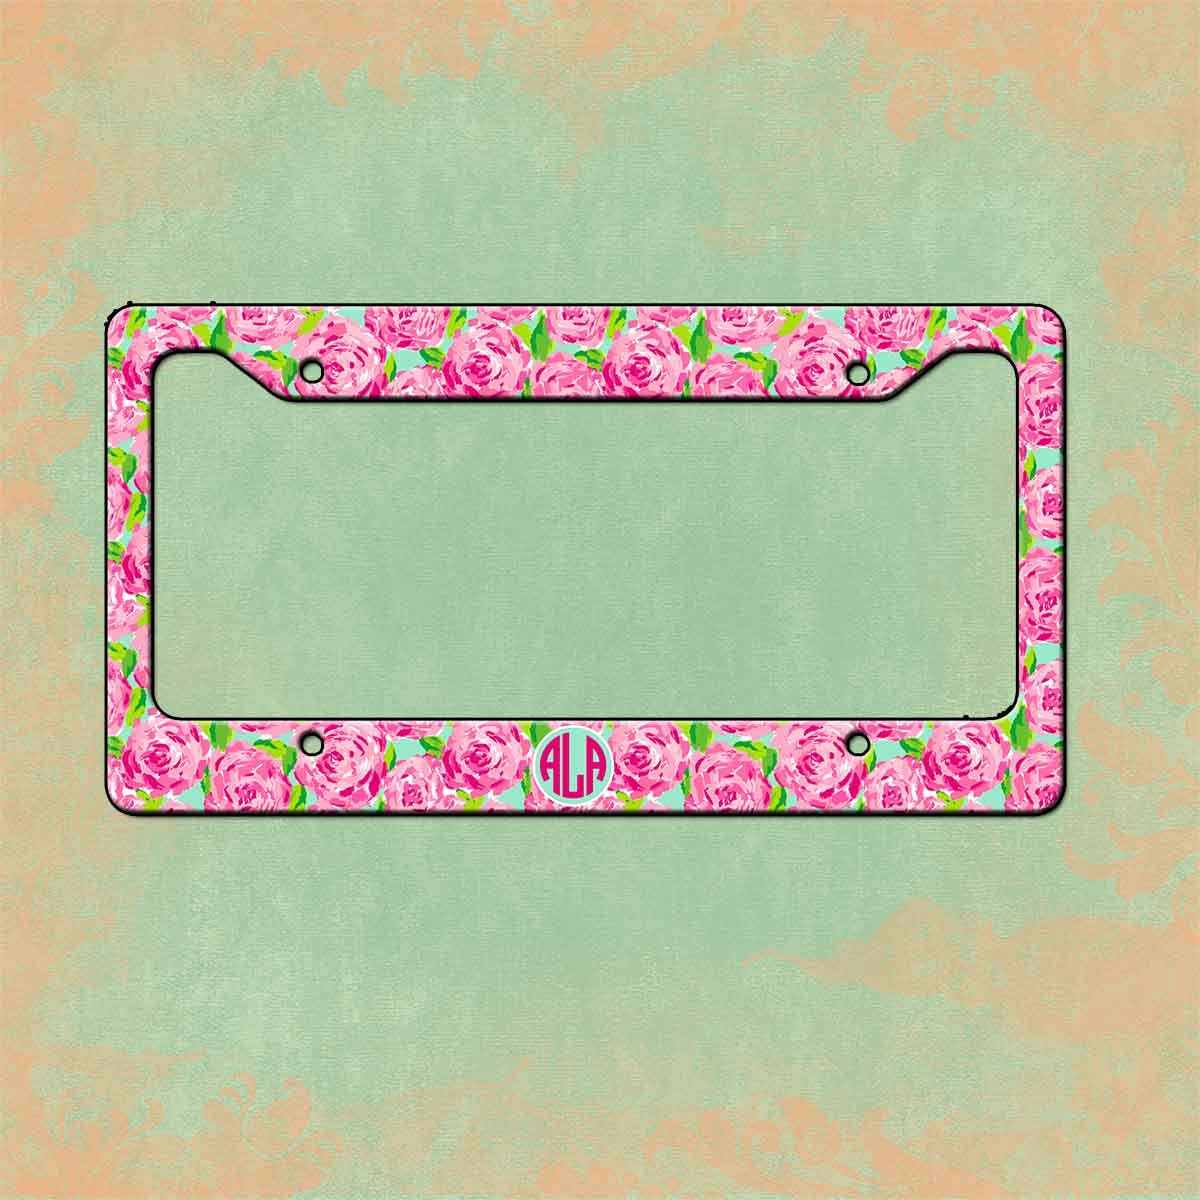 zoom - Monogram License Plate Frame